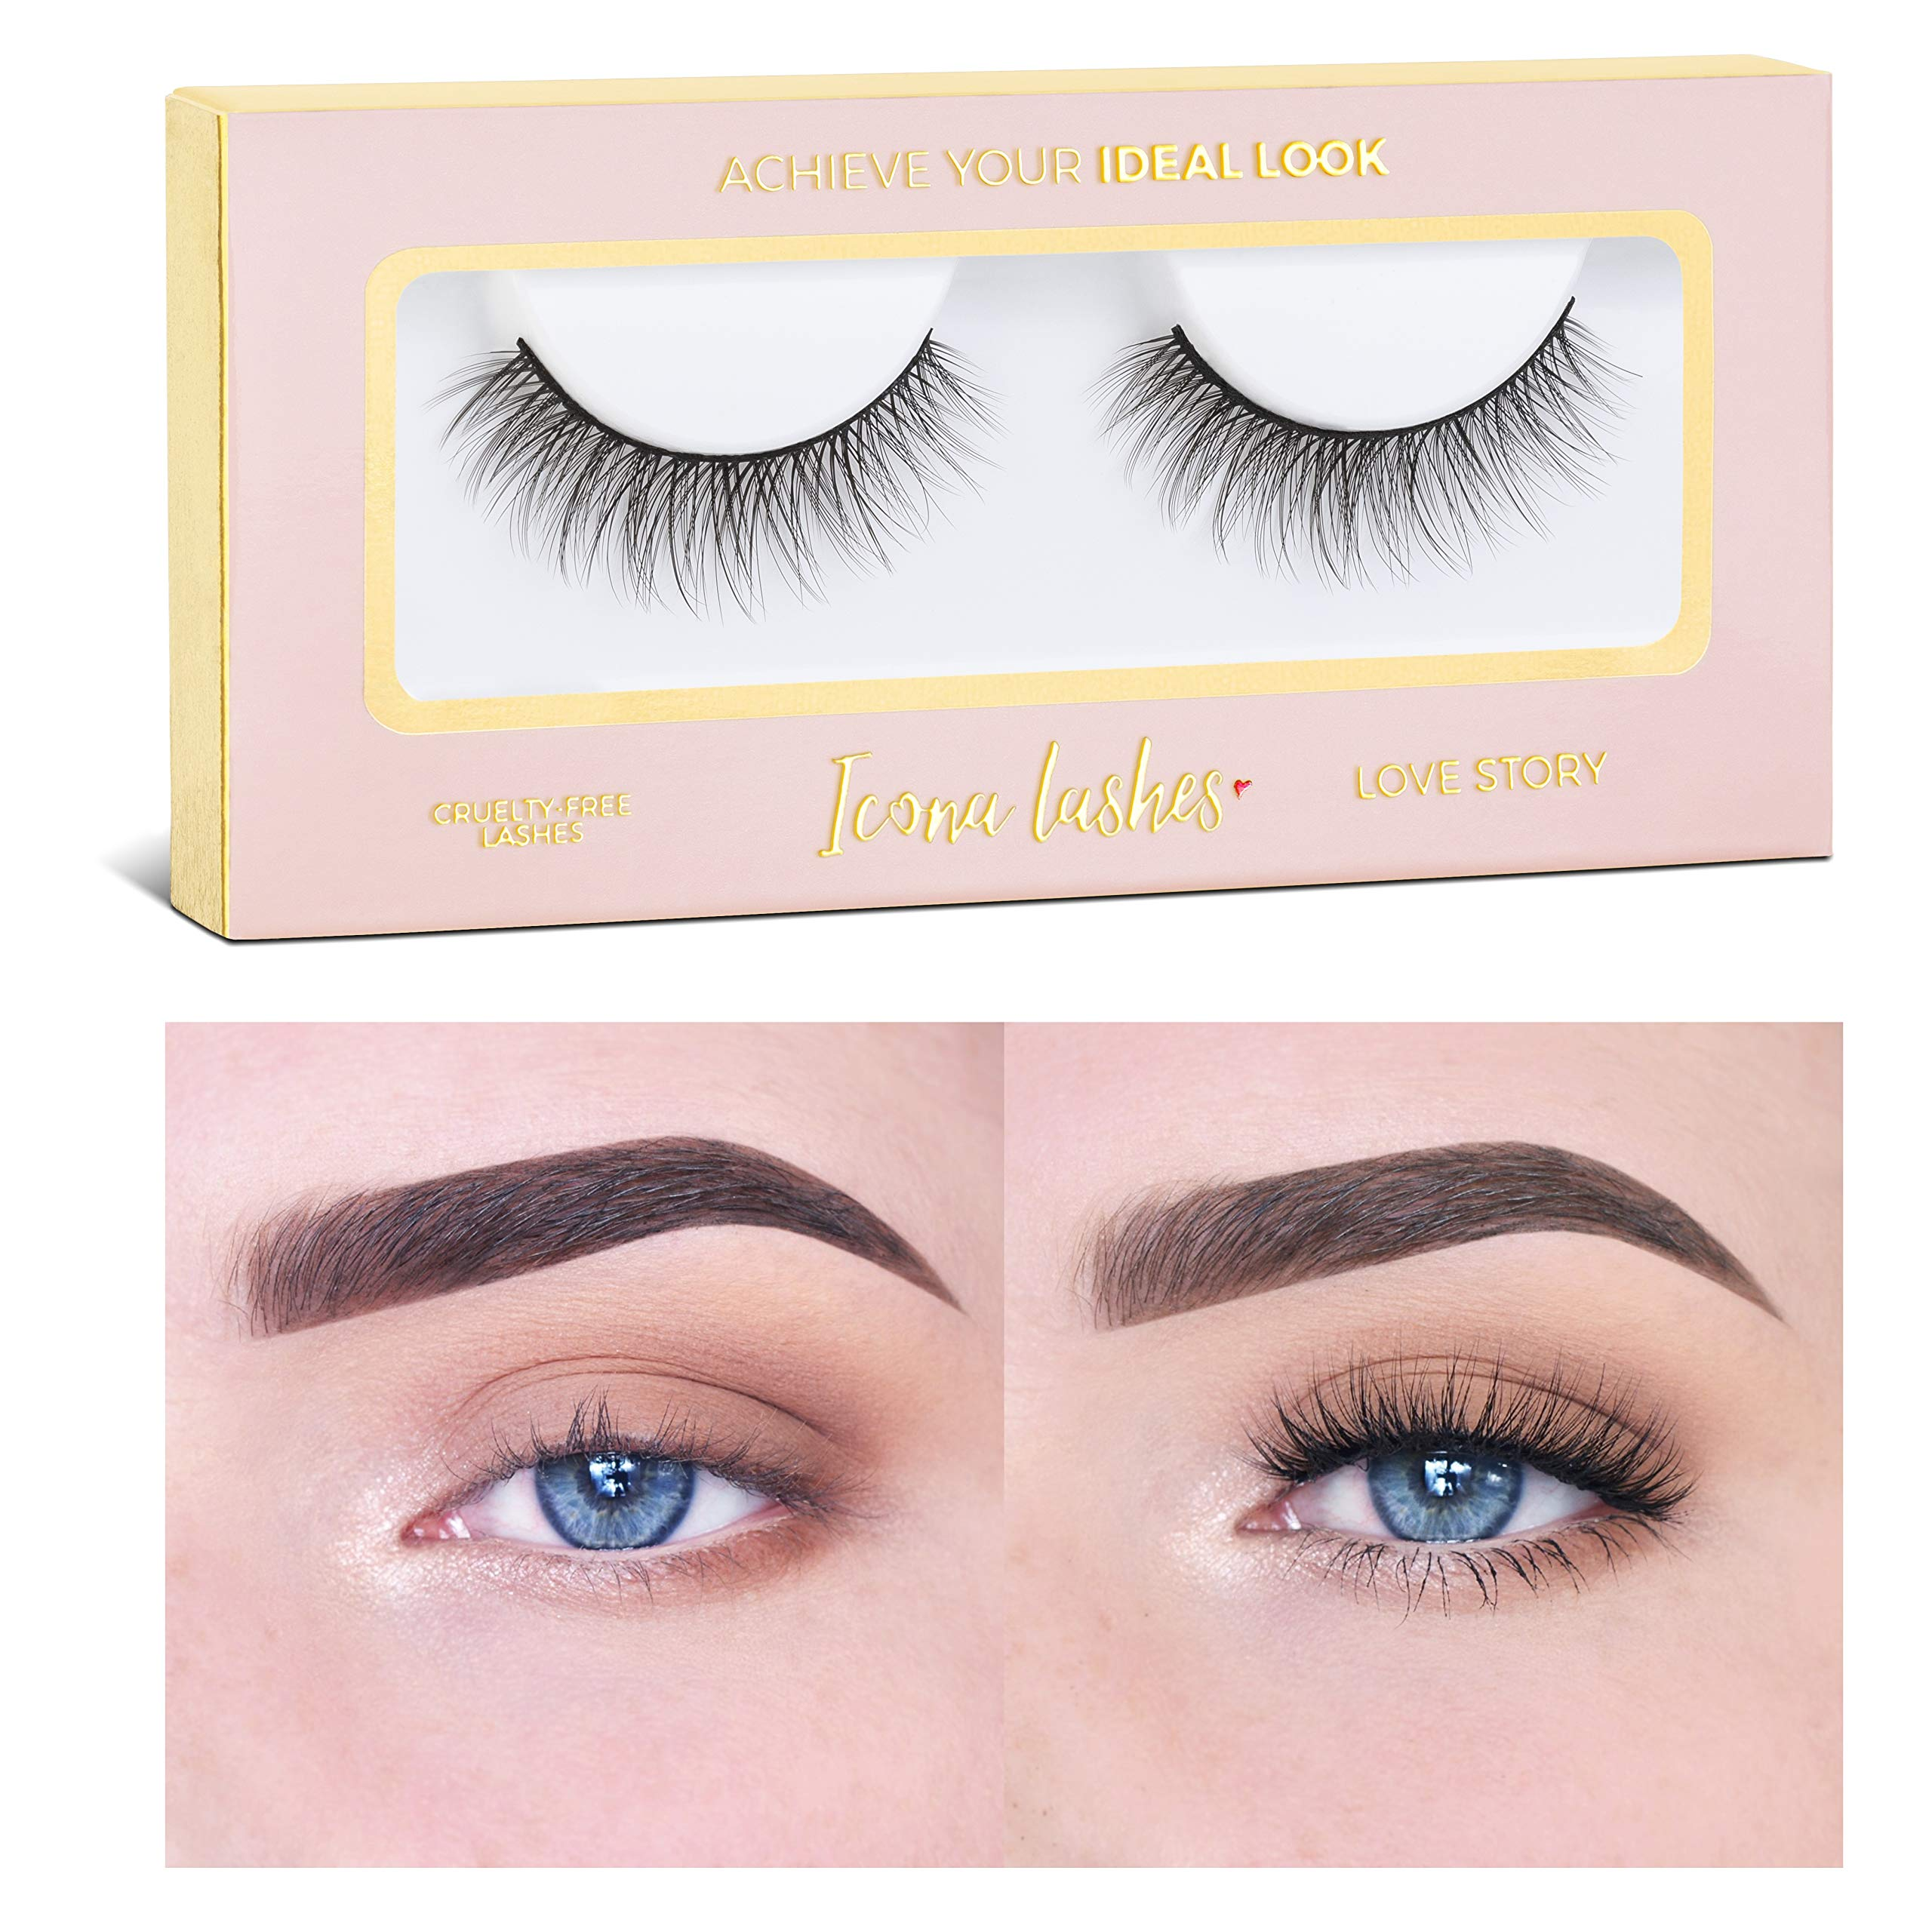 3f1752d4e56 Icona Lashes Premium Quality False Eyelashes | Love Story | Fluffy and  Universal for All Eyes